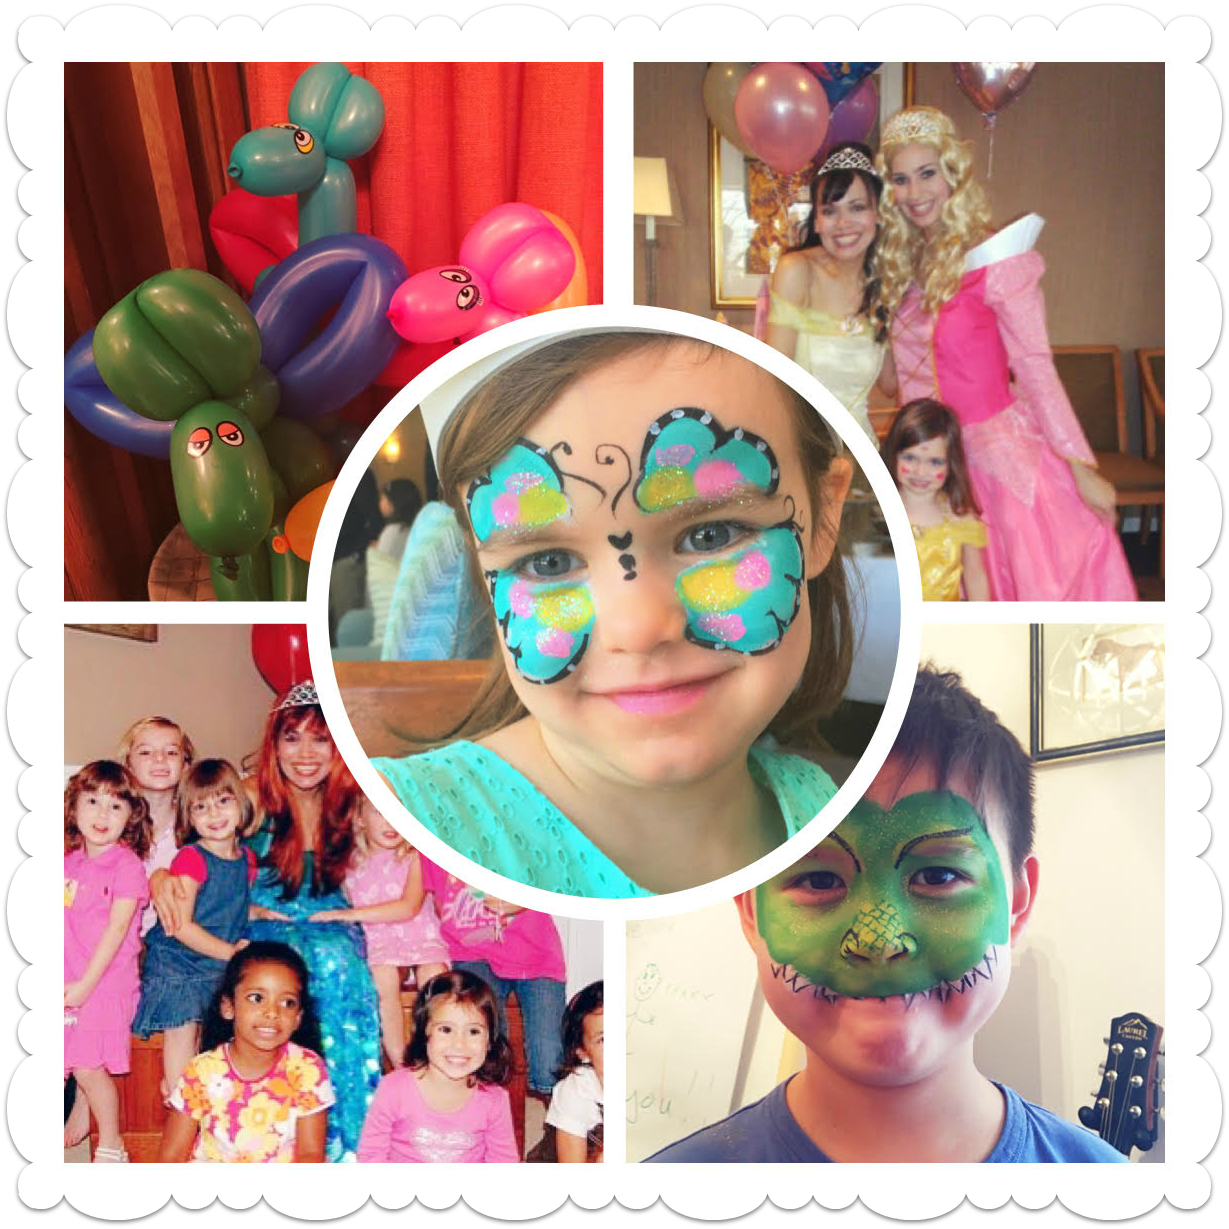 face painter and balloon artst kids party entertainment packages princesses Elsa Anna Clowns toddler parties face painting corporate party